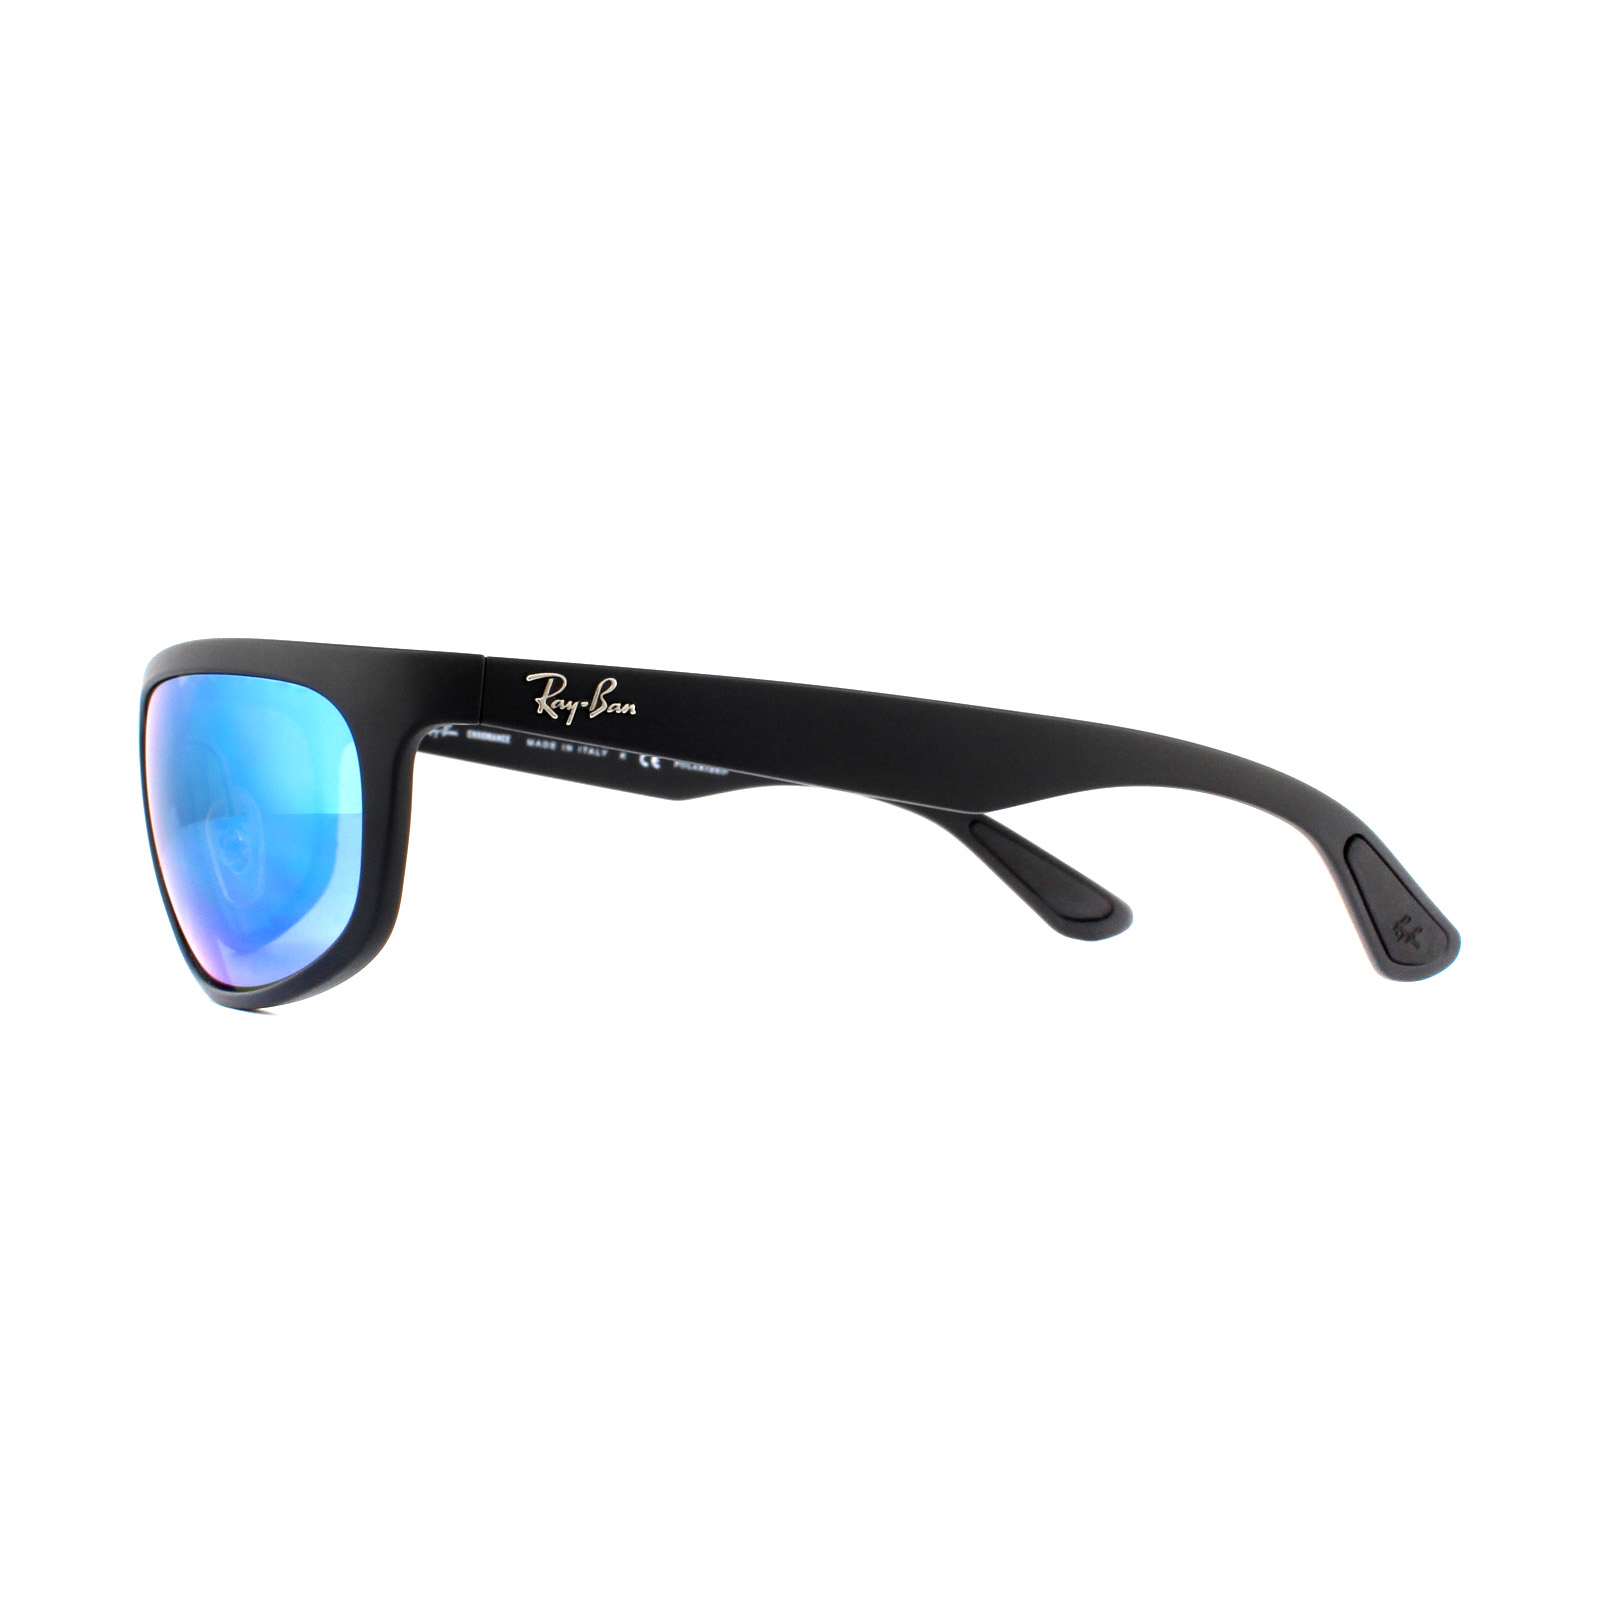 451f3e4bd3 Sentinel Ray-Ban Sunglasses RB4265 601SA1 Black Blue Mirror Chromance  Polarized